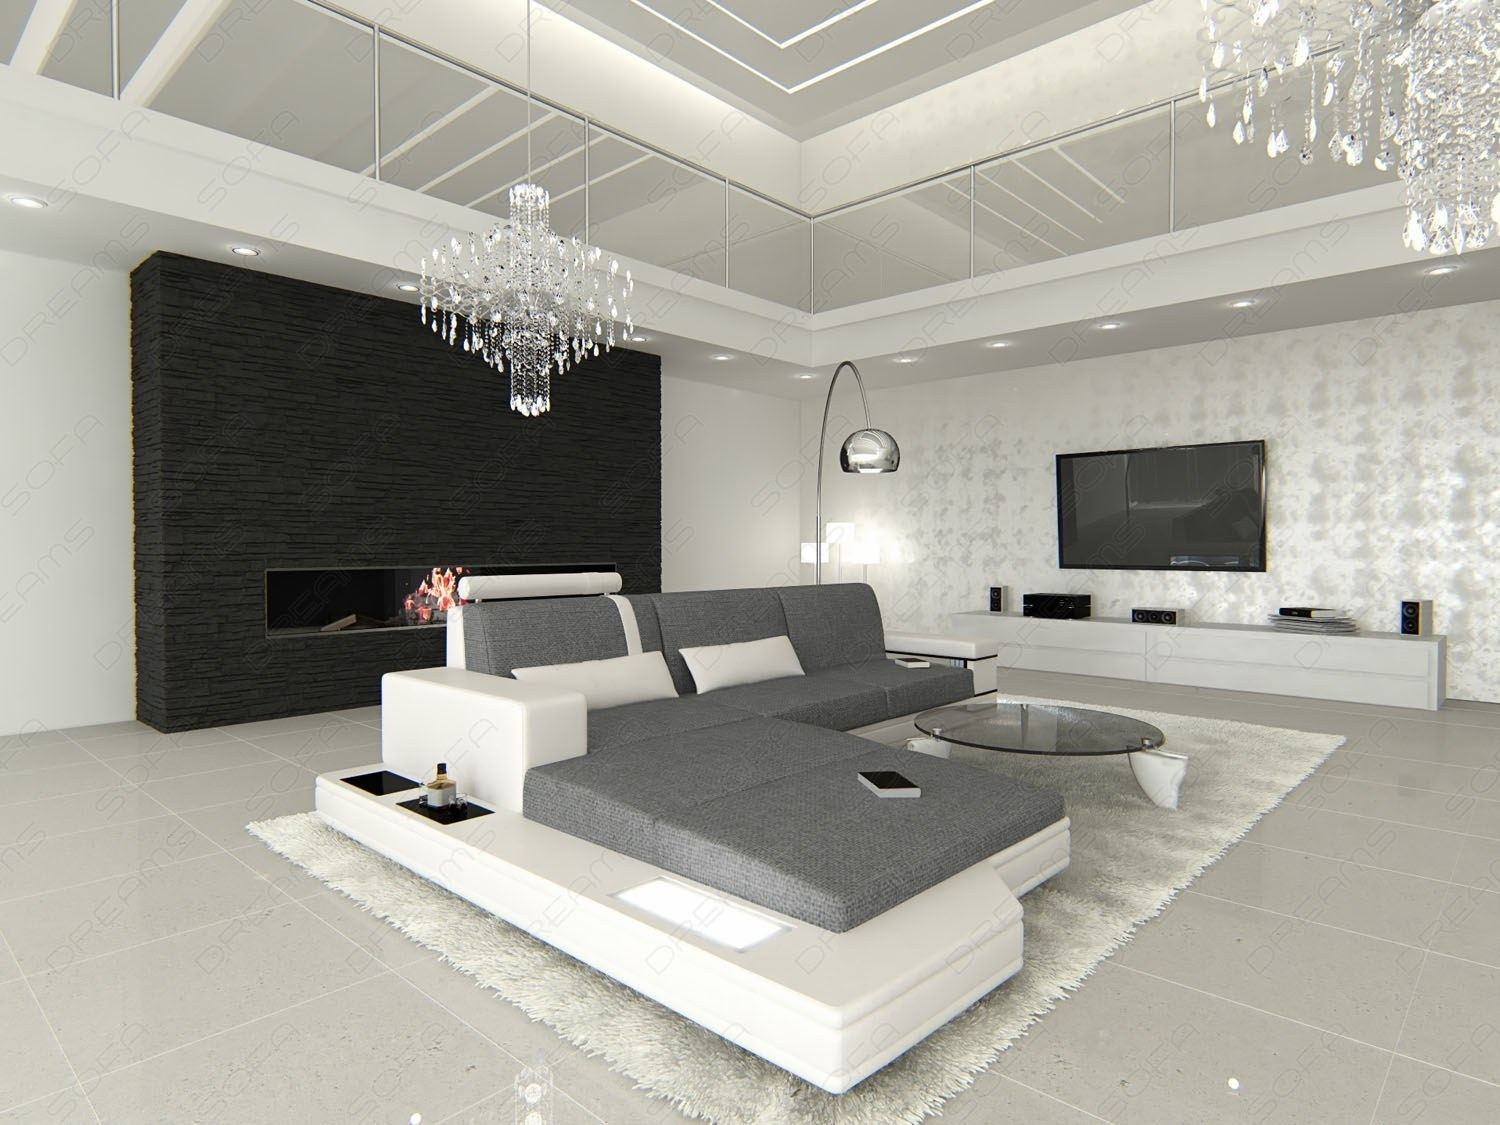 fabric sectional sofa messana l shaped with lighting. Black Bedroom Furniture Sets. Home Design Ideas